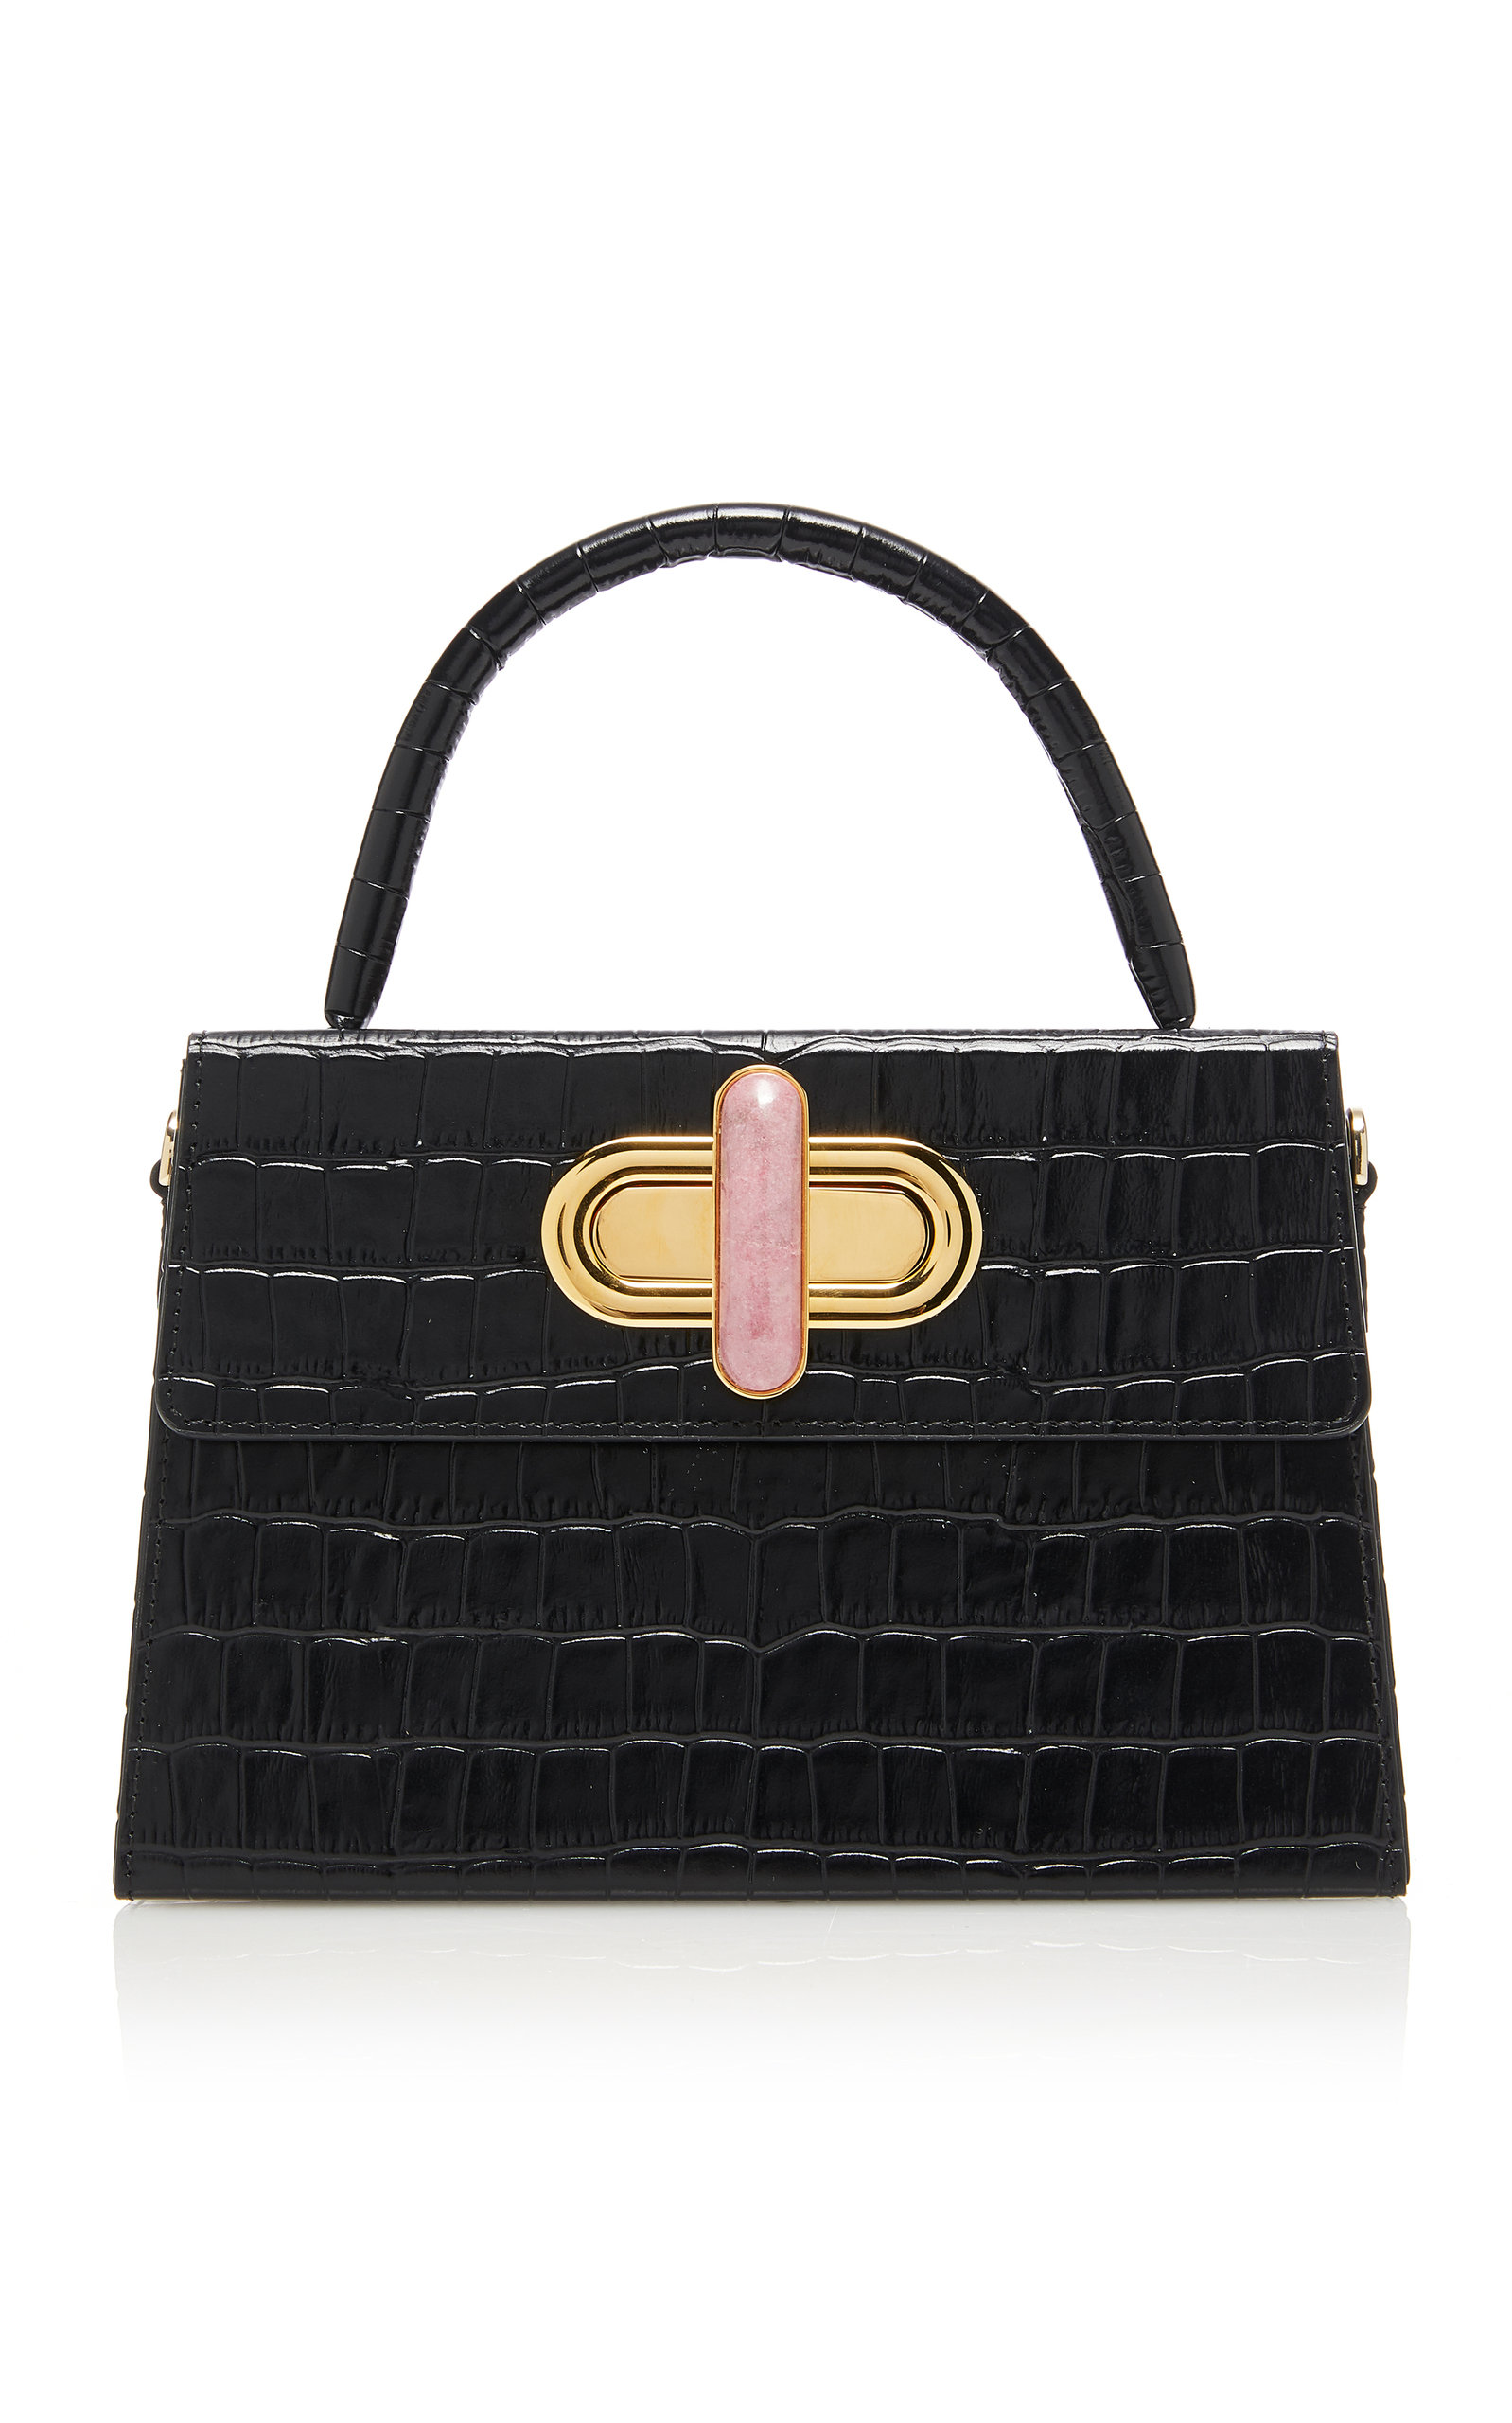 L'AFSHAR | L'Afshar Diba Embossed Leather Bag With Gold Loop Chain | Goxip